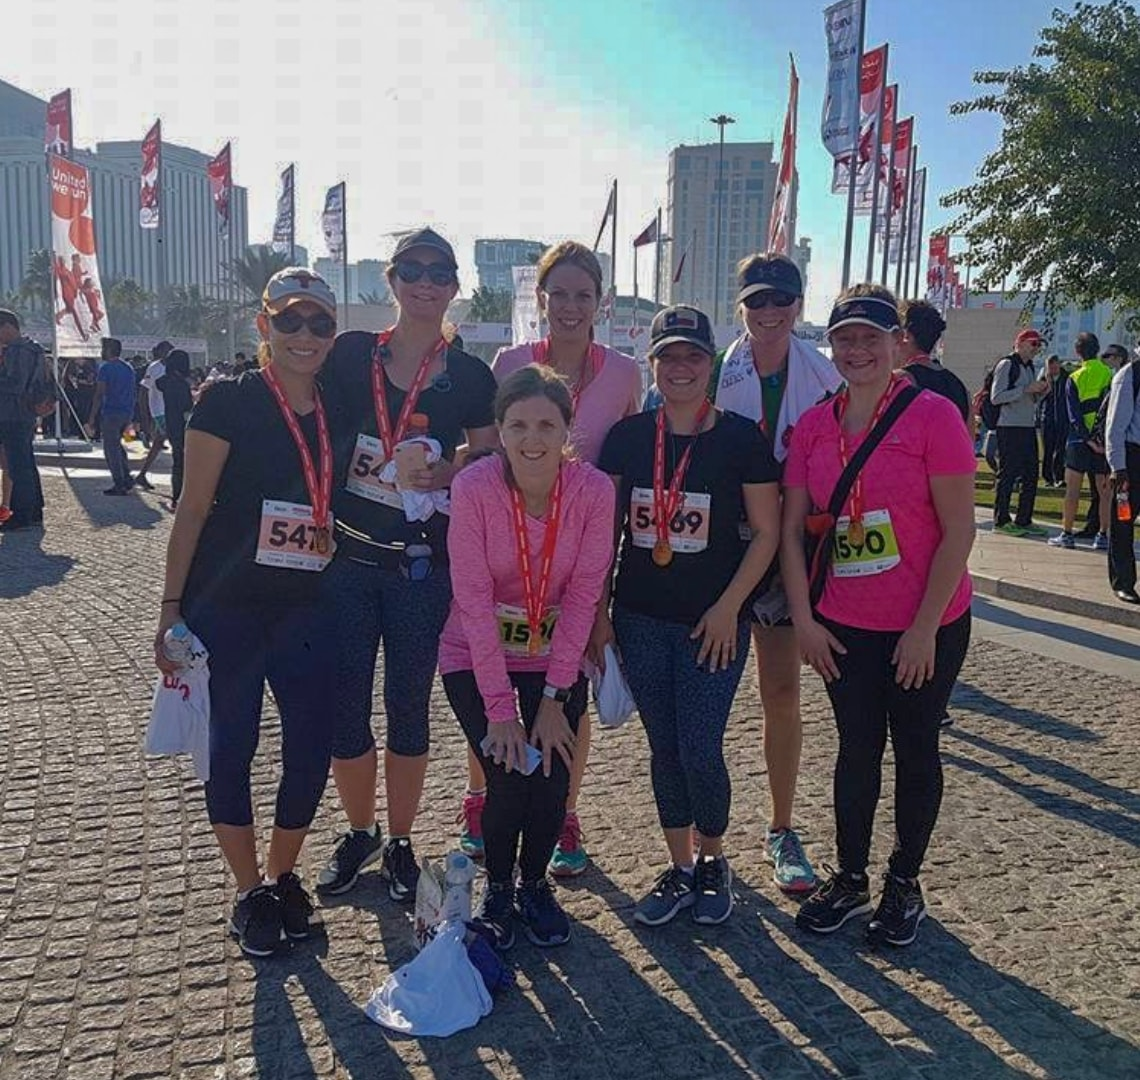 Make friends - me and my running friends after a 10k in Doha